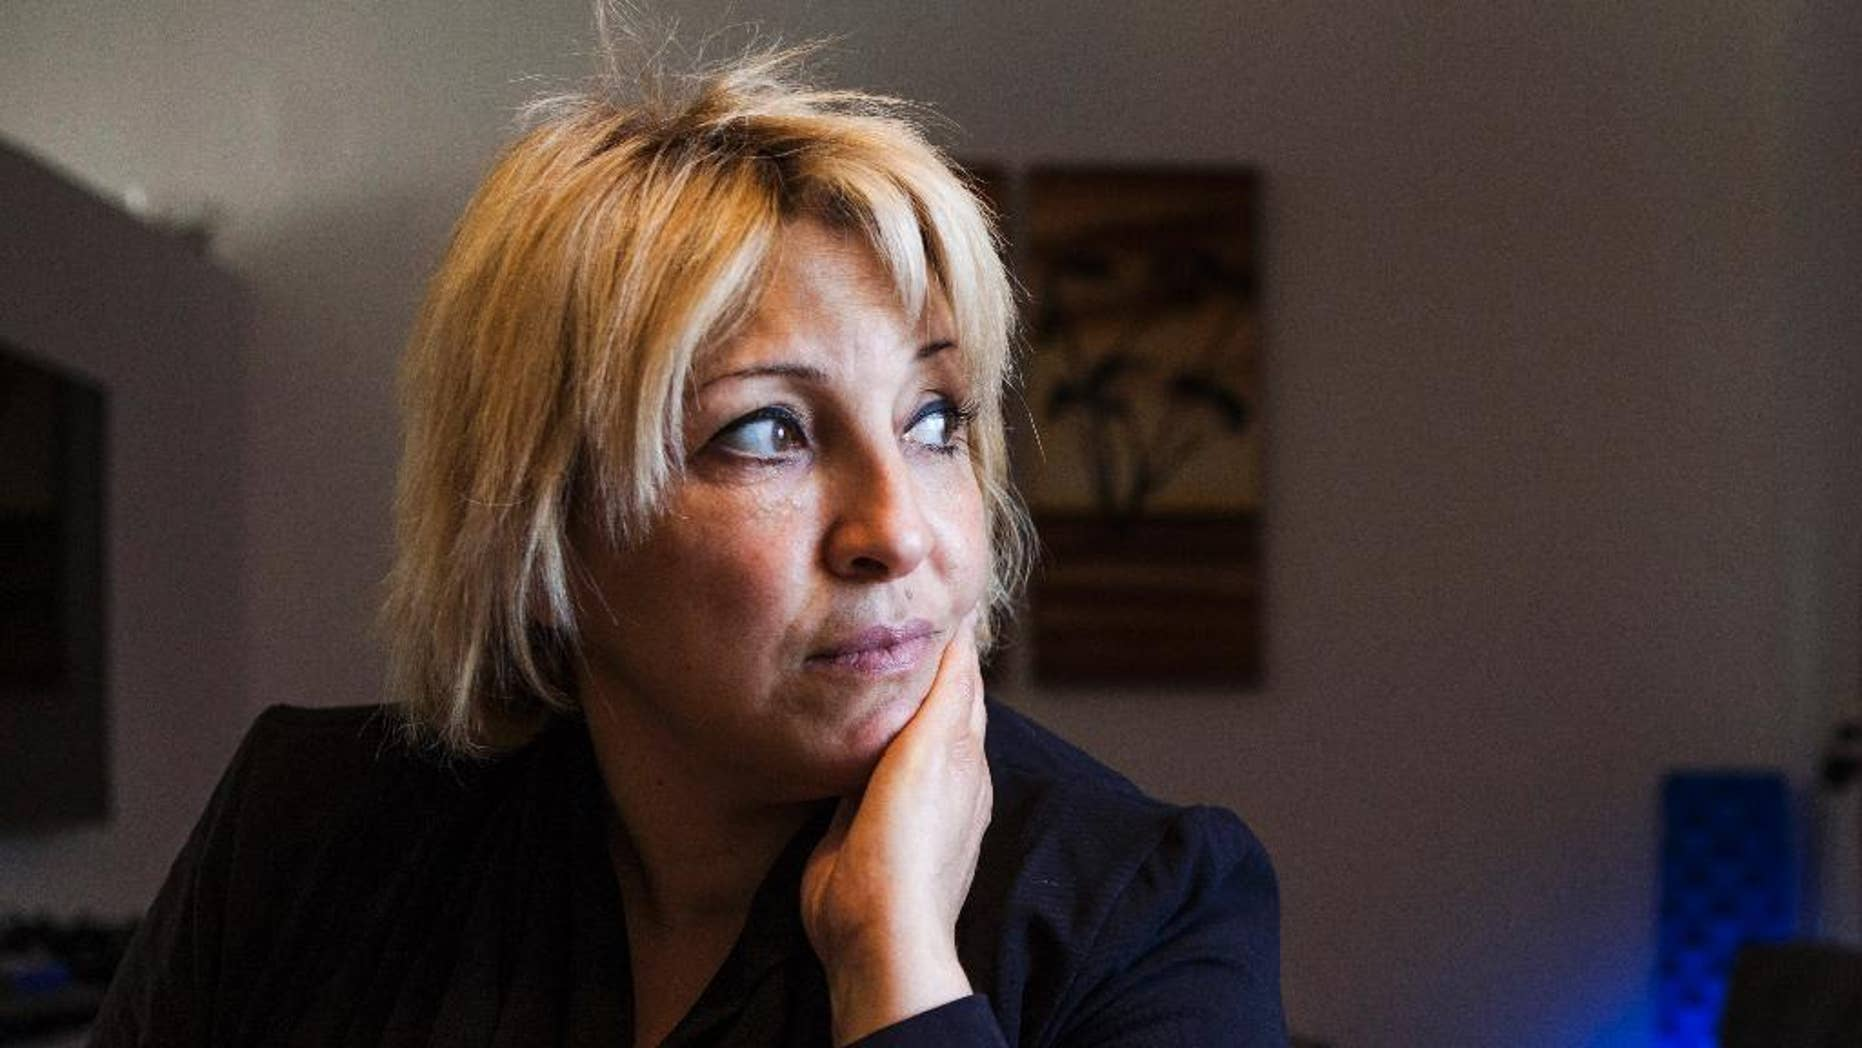 This photo taken on Tuesday, Dec. 30, 2014 shows Anett Haskia at her house at Kinbutz Yehiam next to the city of Nahariyah, Israel. Haskia is breaking every possible stereotype by running for a parliament seat with a pro-settler, religious Jewish party opposed to a Palestinian state. (AP Photo/Dan Balilty)